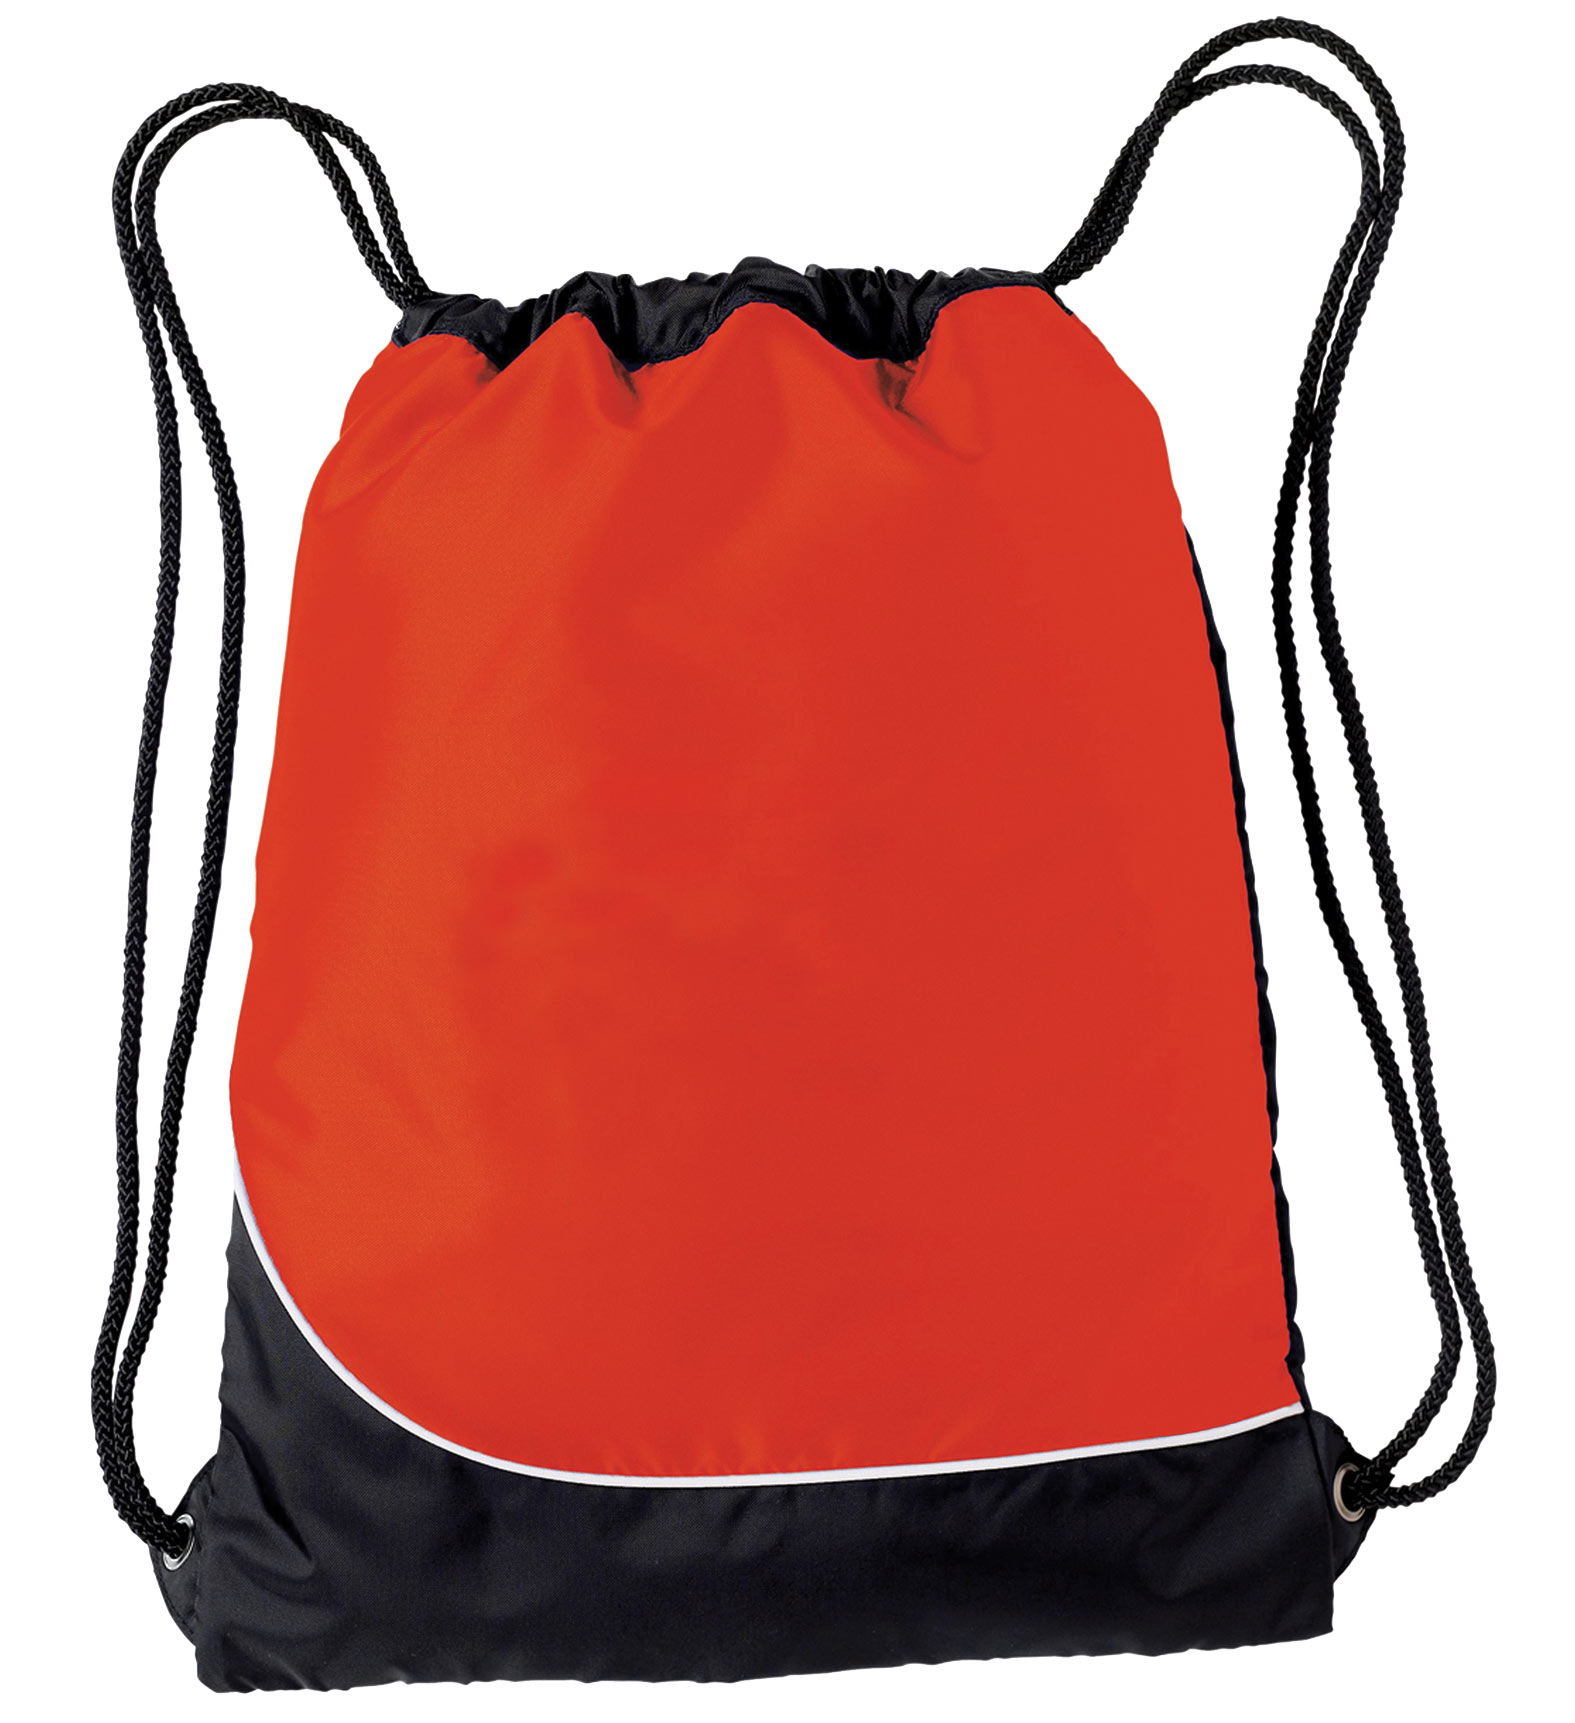 Day-Pak Drawstring Backpack